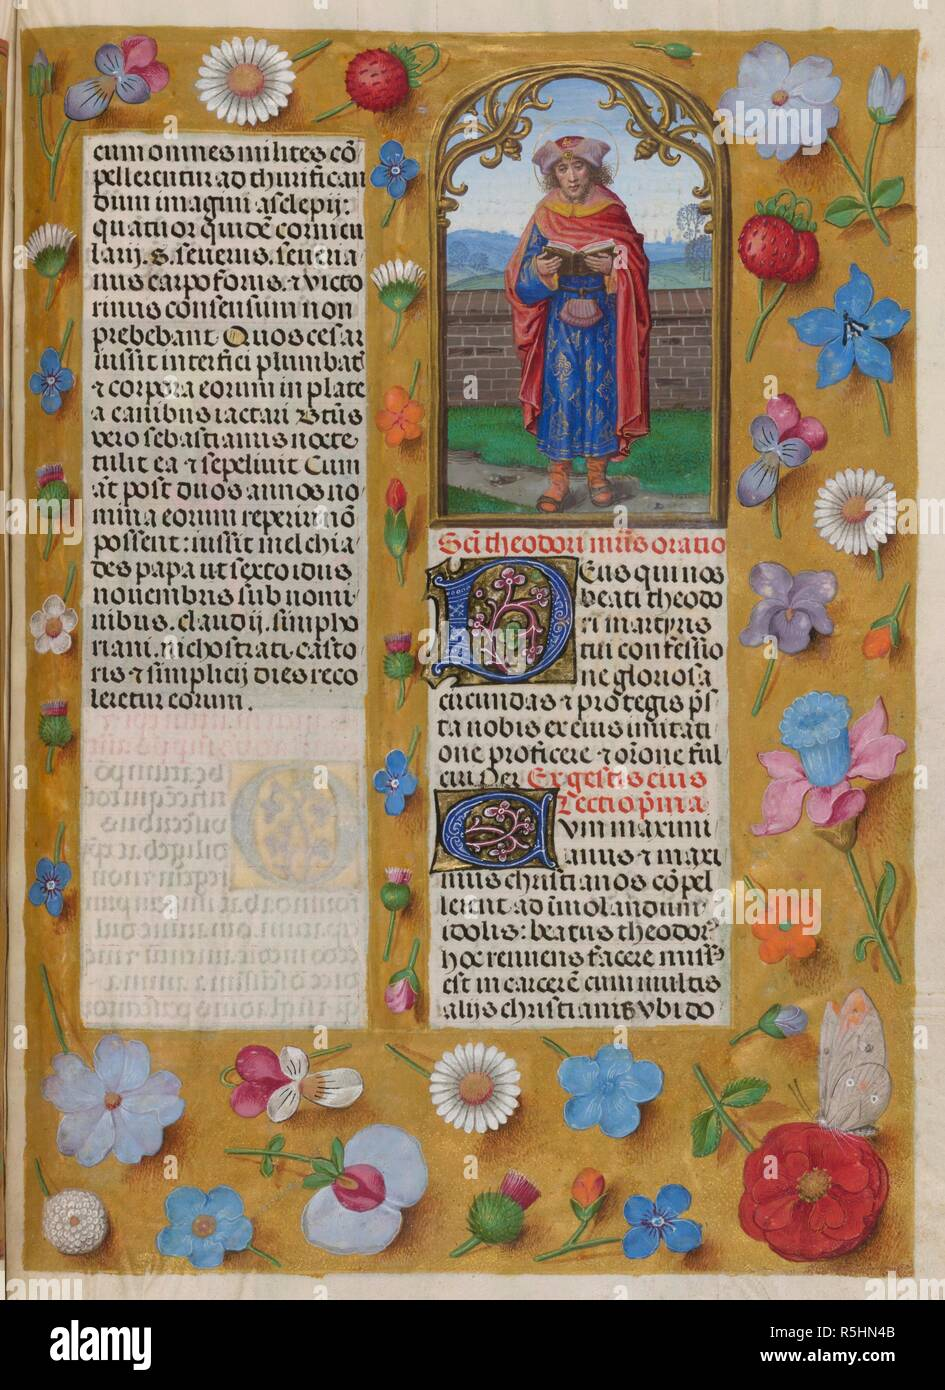 Sanctorale. St Theodore. Isabella Breviary. Breviary, Use of the Dominicans ('The Breviary of Queen Isabella of Castile'). c1497. Source: Add. 18851 f.485. Author: Master of James IV of Scotland. - Stock Image